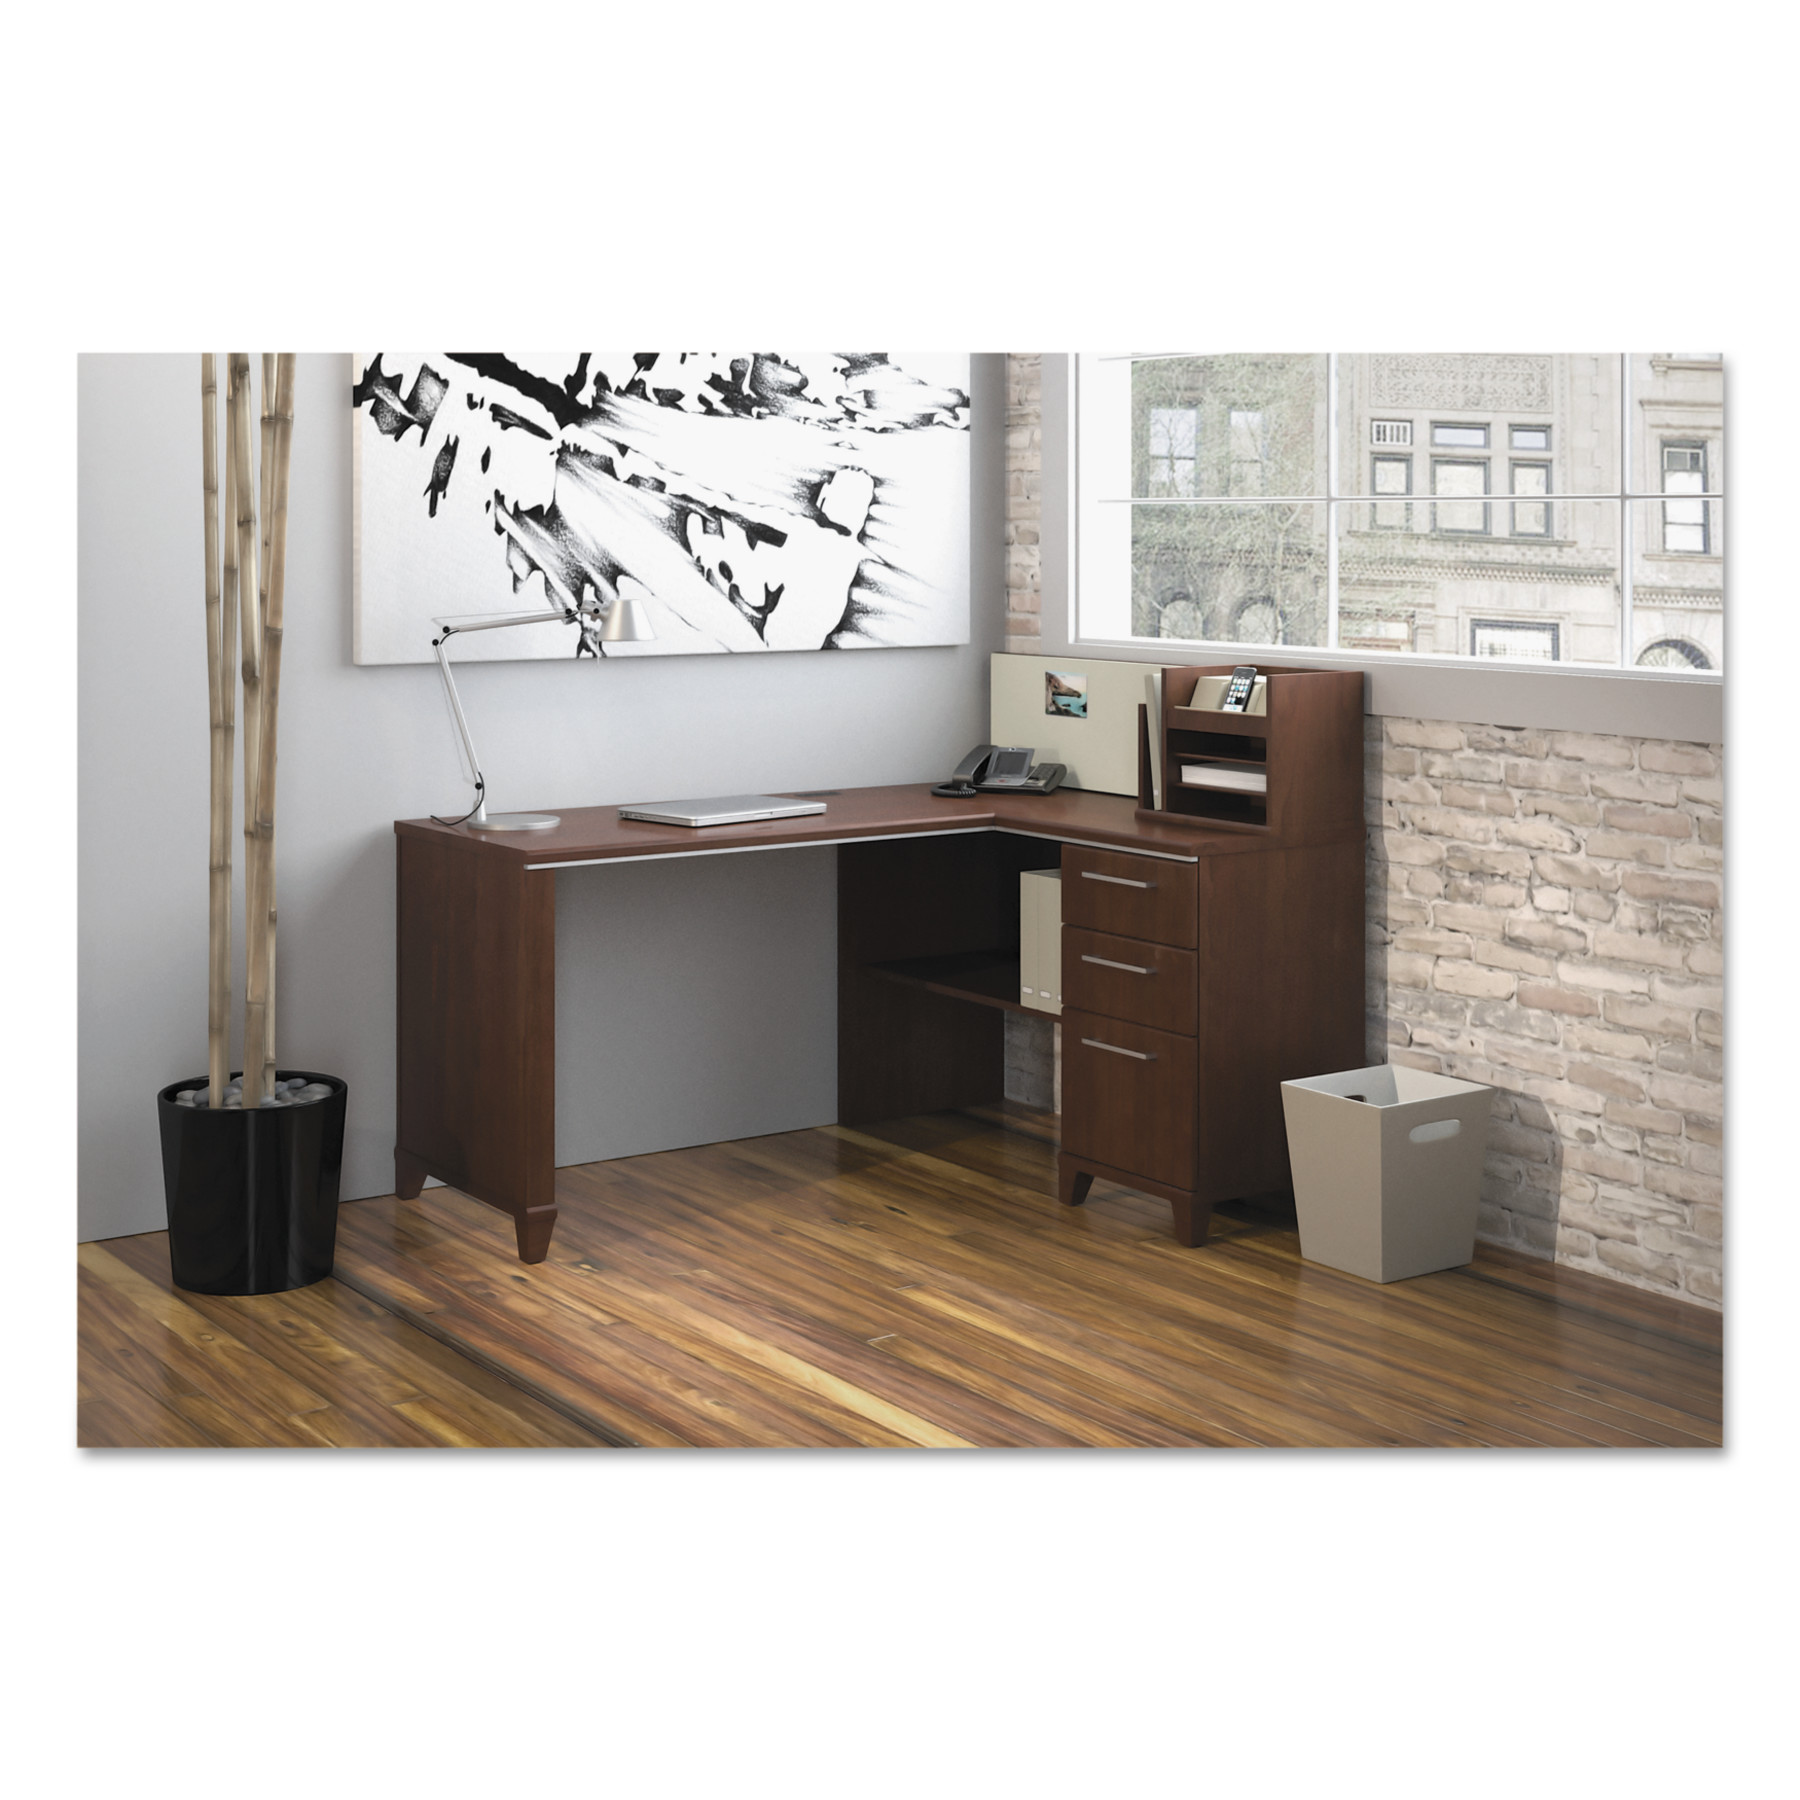 Enterprise Collection 60W x 47D Corner Desk, Harvest Cherry (Box 1 of 2)